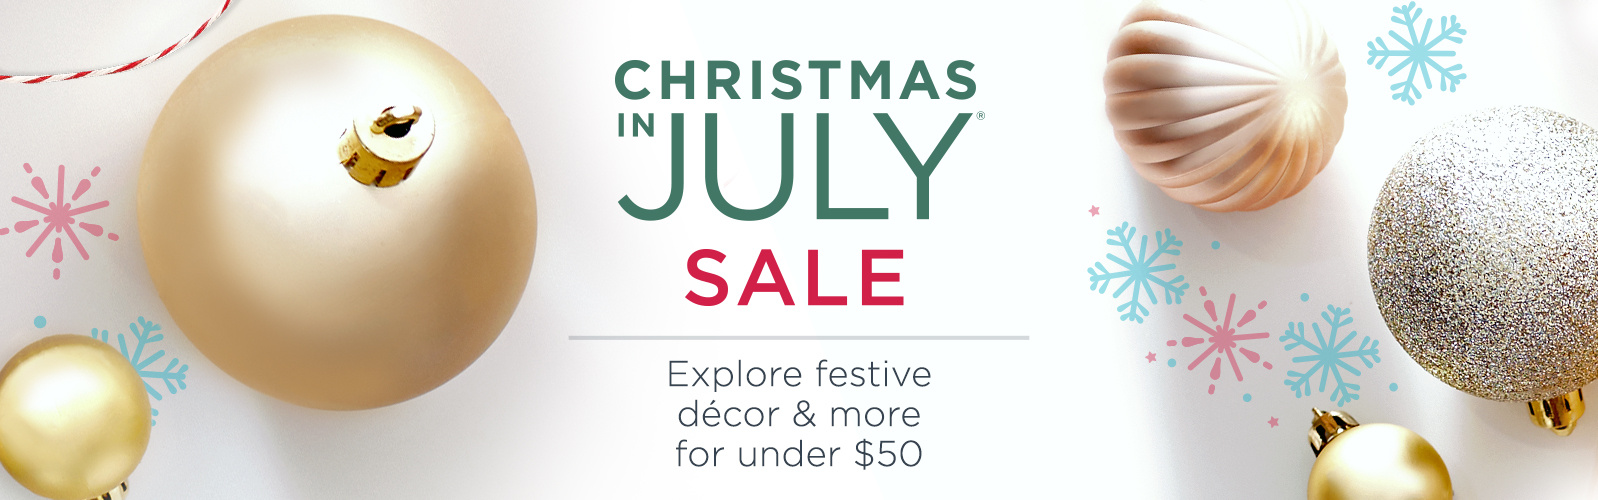 Christmas in July® Sale. Explore festive décor & more for under $50